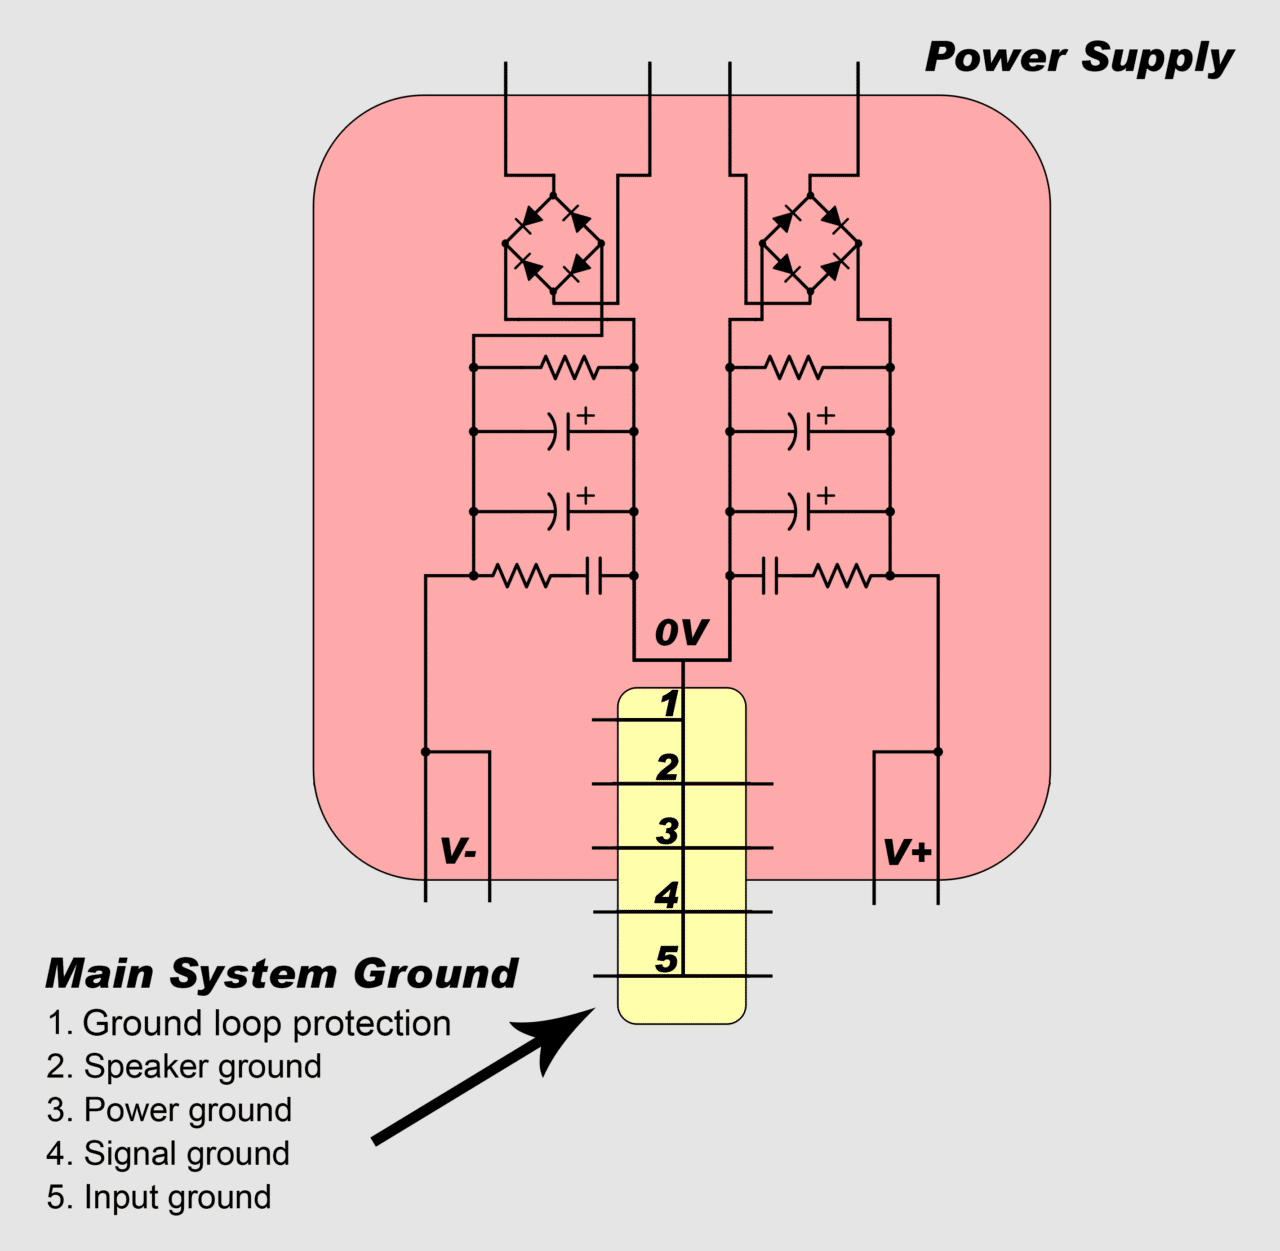 A Complete Guide To Design And Build Hi Fi Lm3886 Amplifier Regulated Power Supply Circuit Diagram Homemade Projects Main System Ground So That Higher Current Grounds Are Closer The Reservoir Capacitors Below Shows How Order Connections